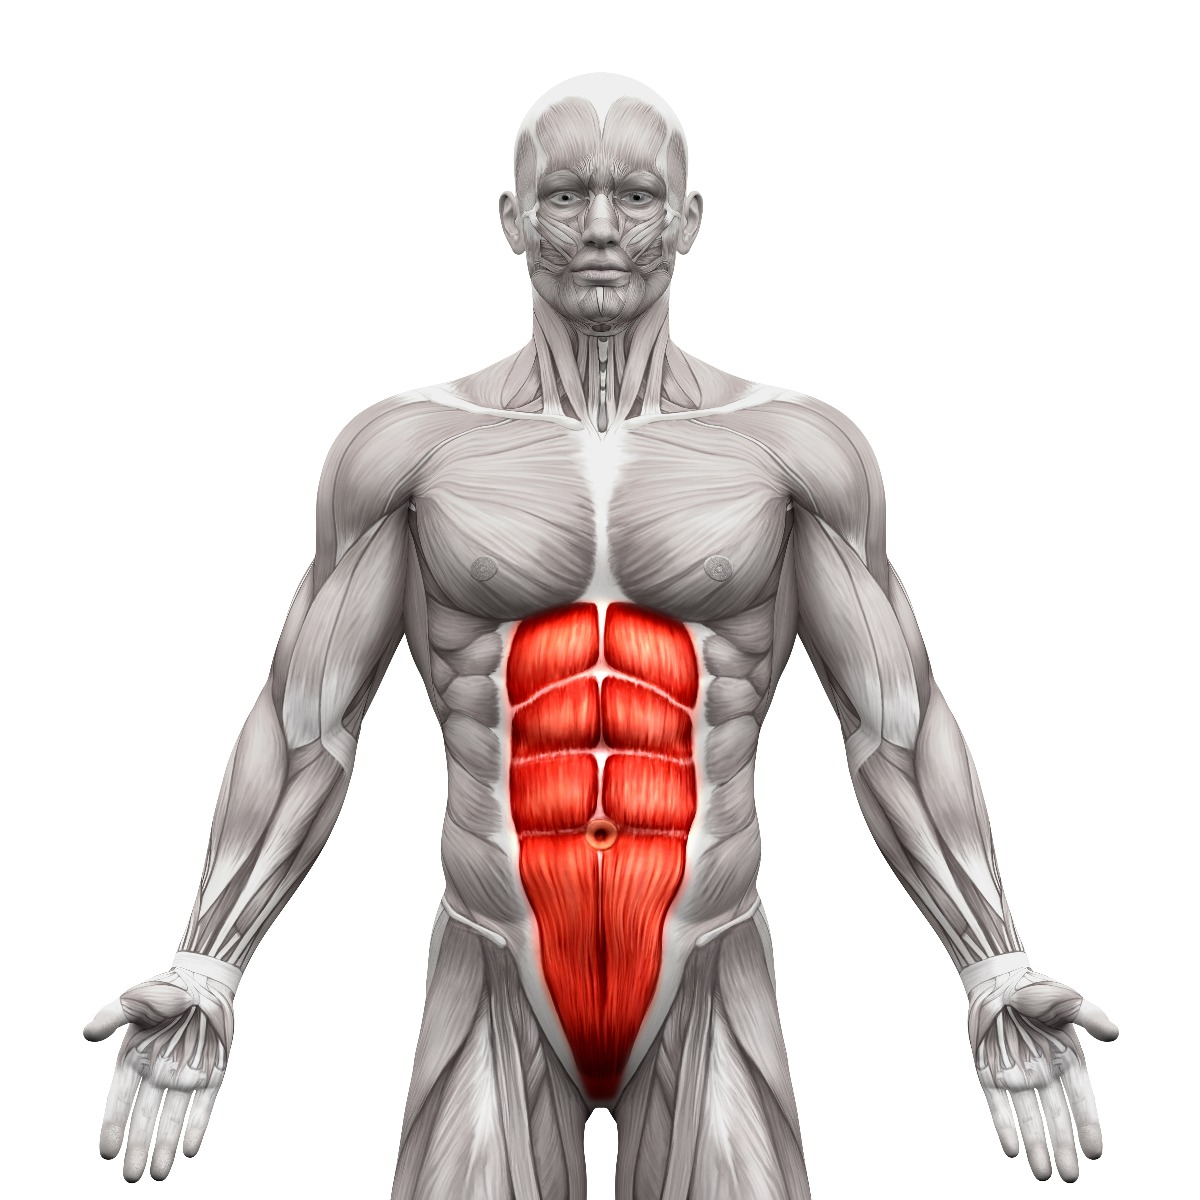 Front anatomy view of ab muscles, highlighted in red